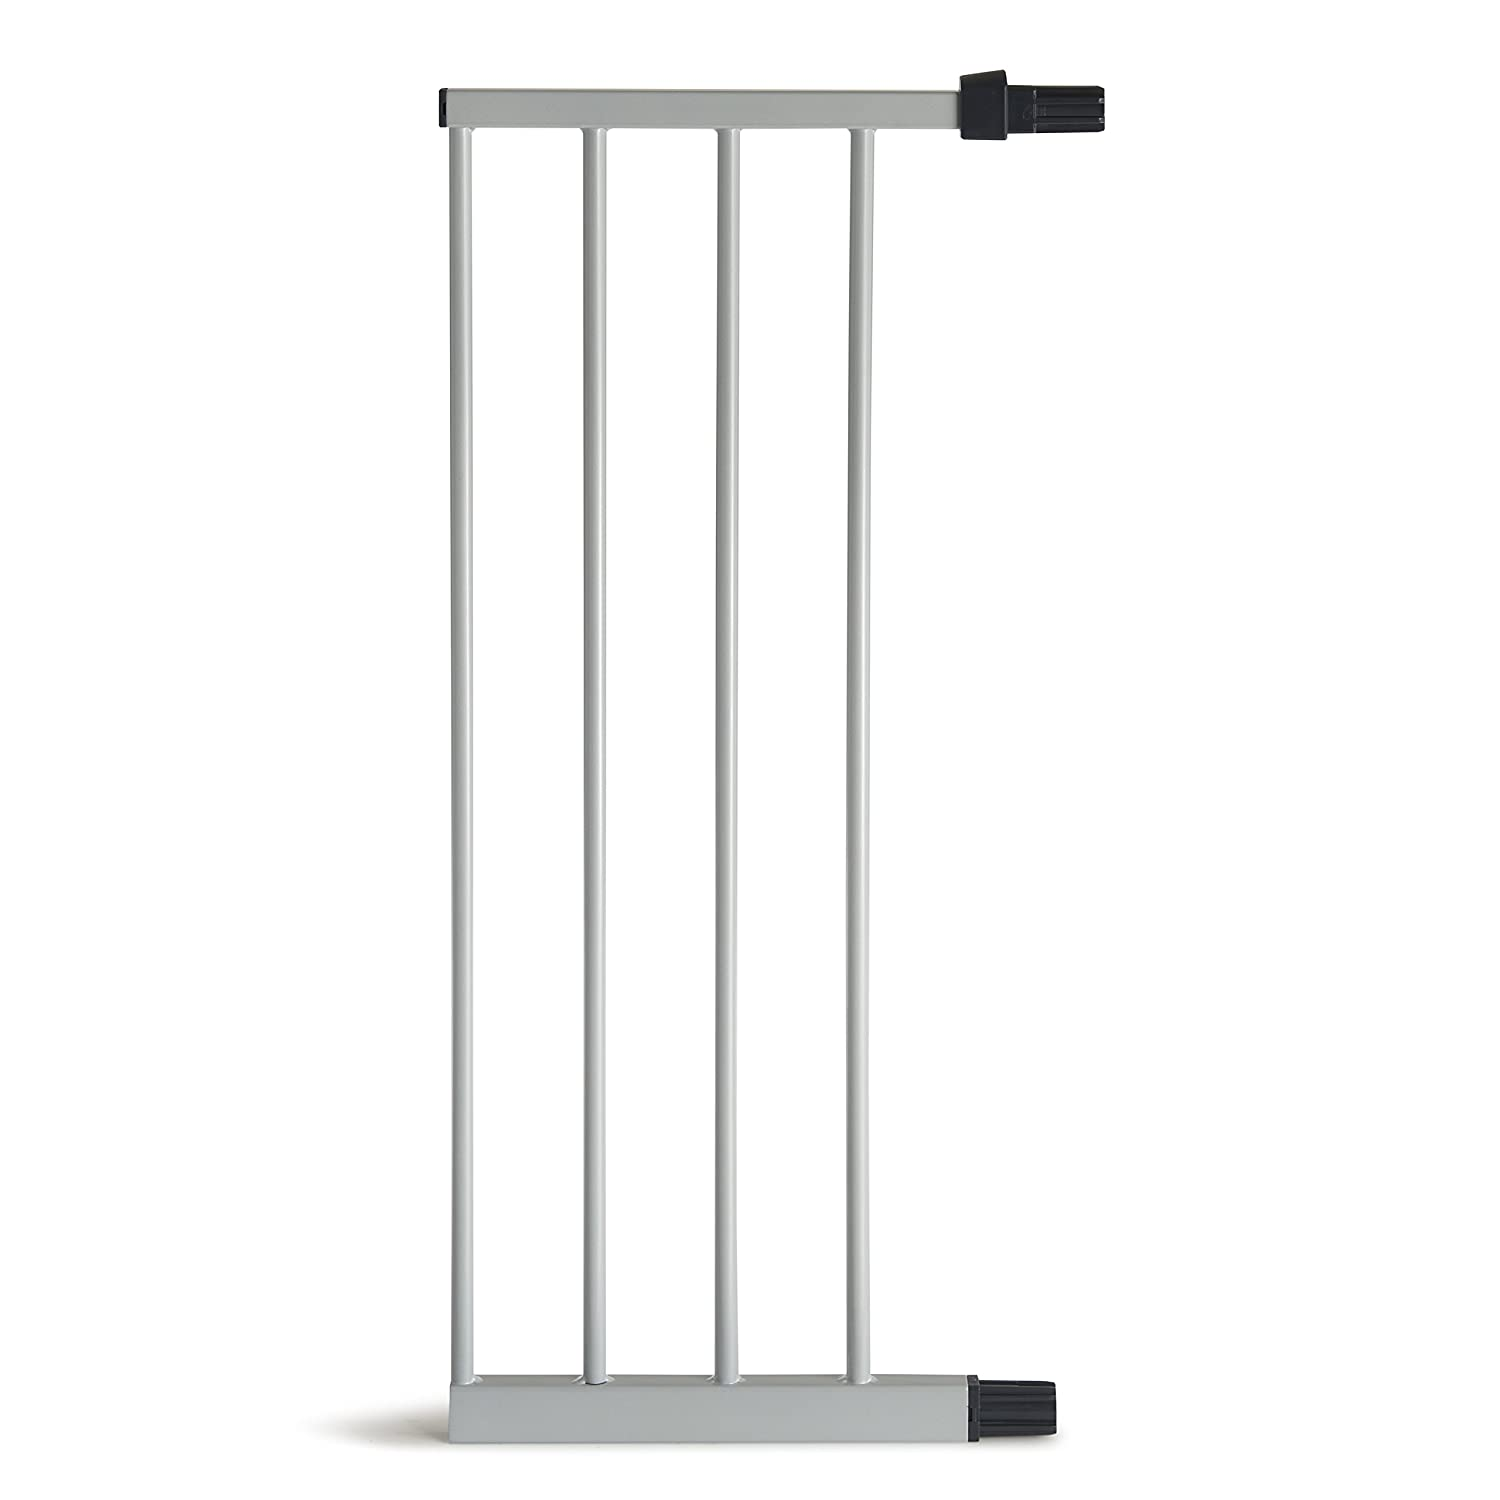 Munchkin Auto Close Baby Gate Extension, Compatible with Gate Model MK0094-011 Modern and MKSA0547 Silver , 11 Inch